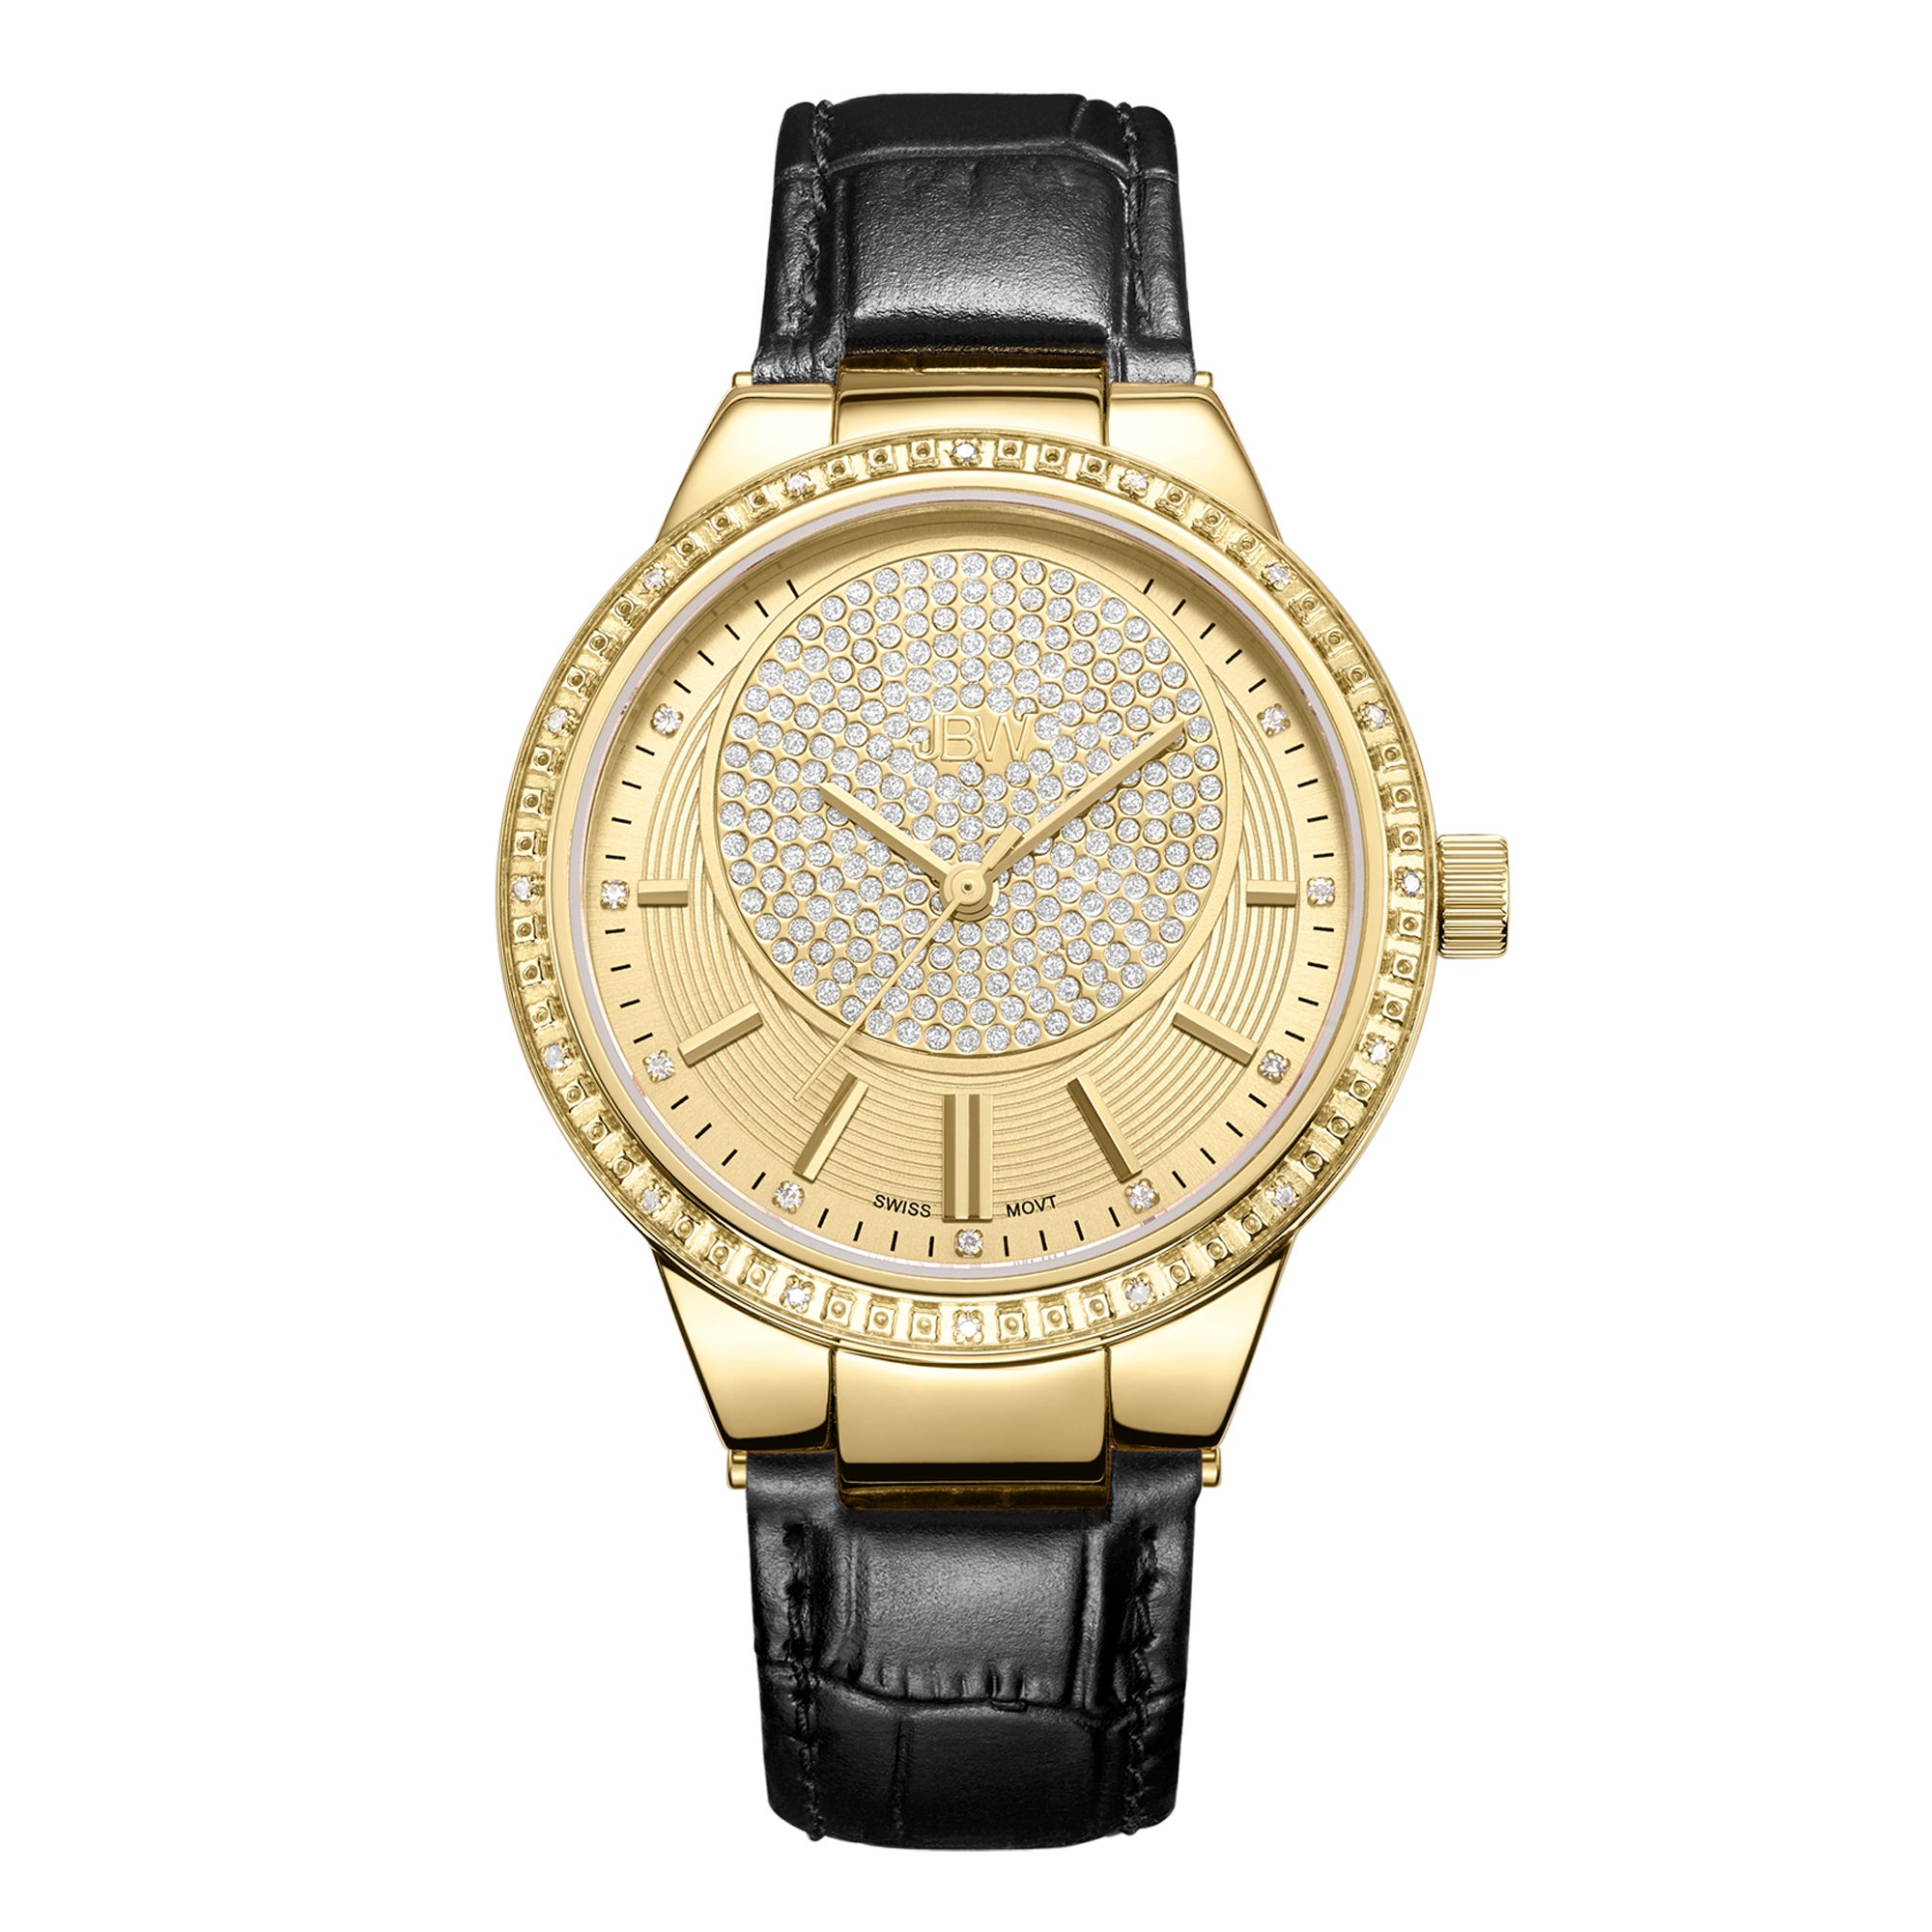 dbc59e3a2cdd Shop JBW Women s Camille Genuine Leather Diamond Watch - Free Shipping  Today - Overstock - 15275614